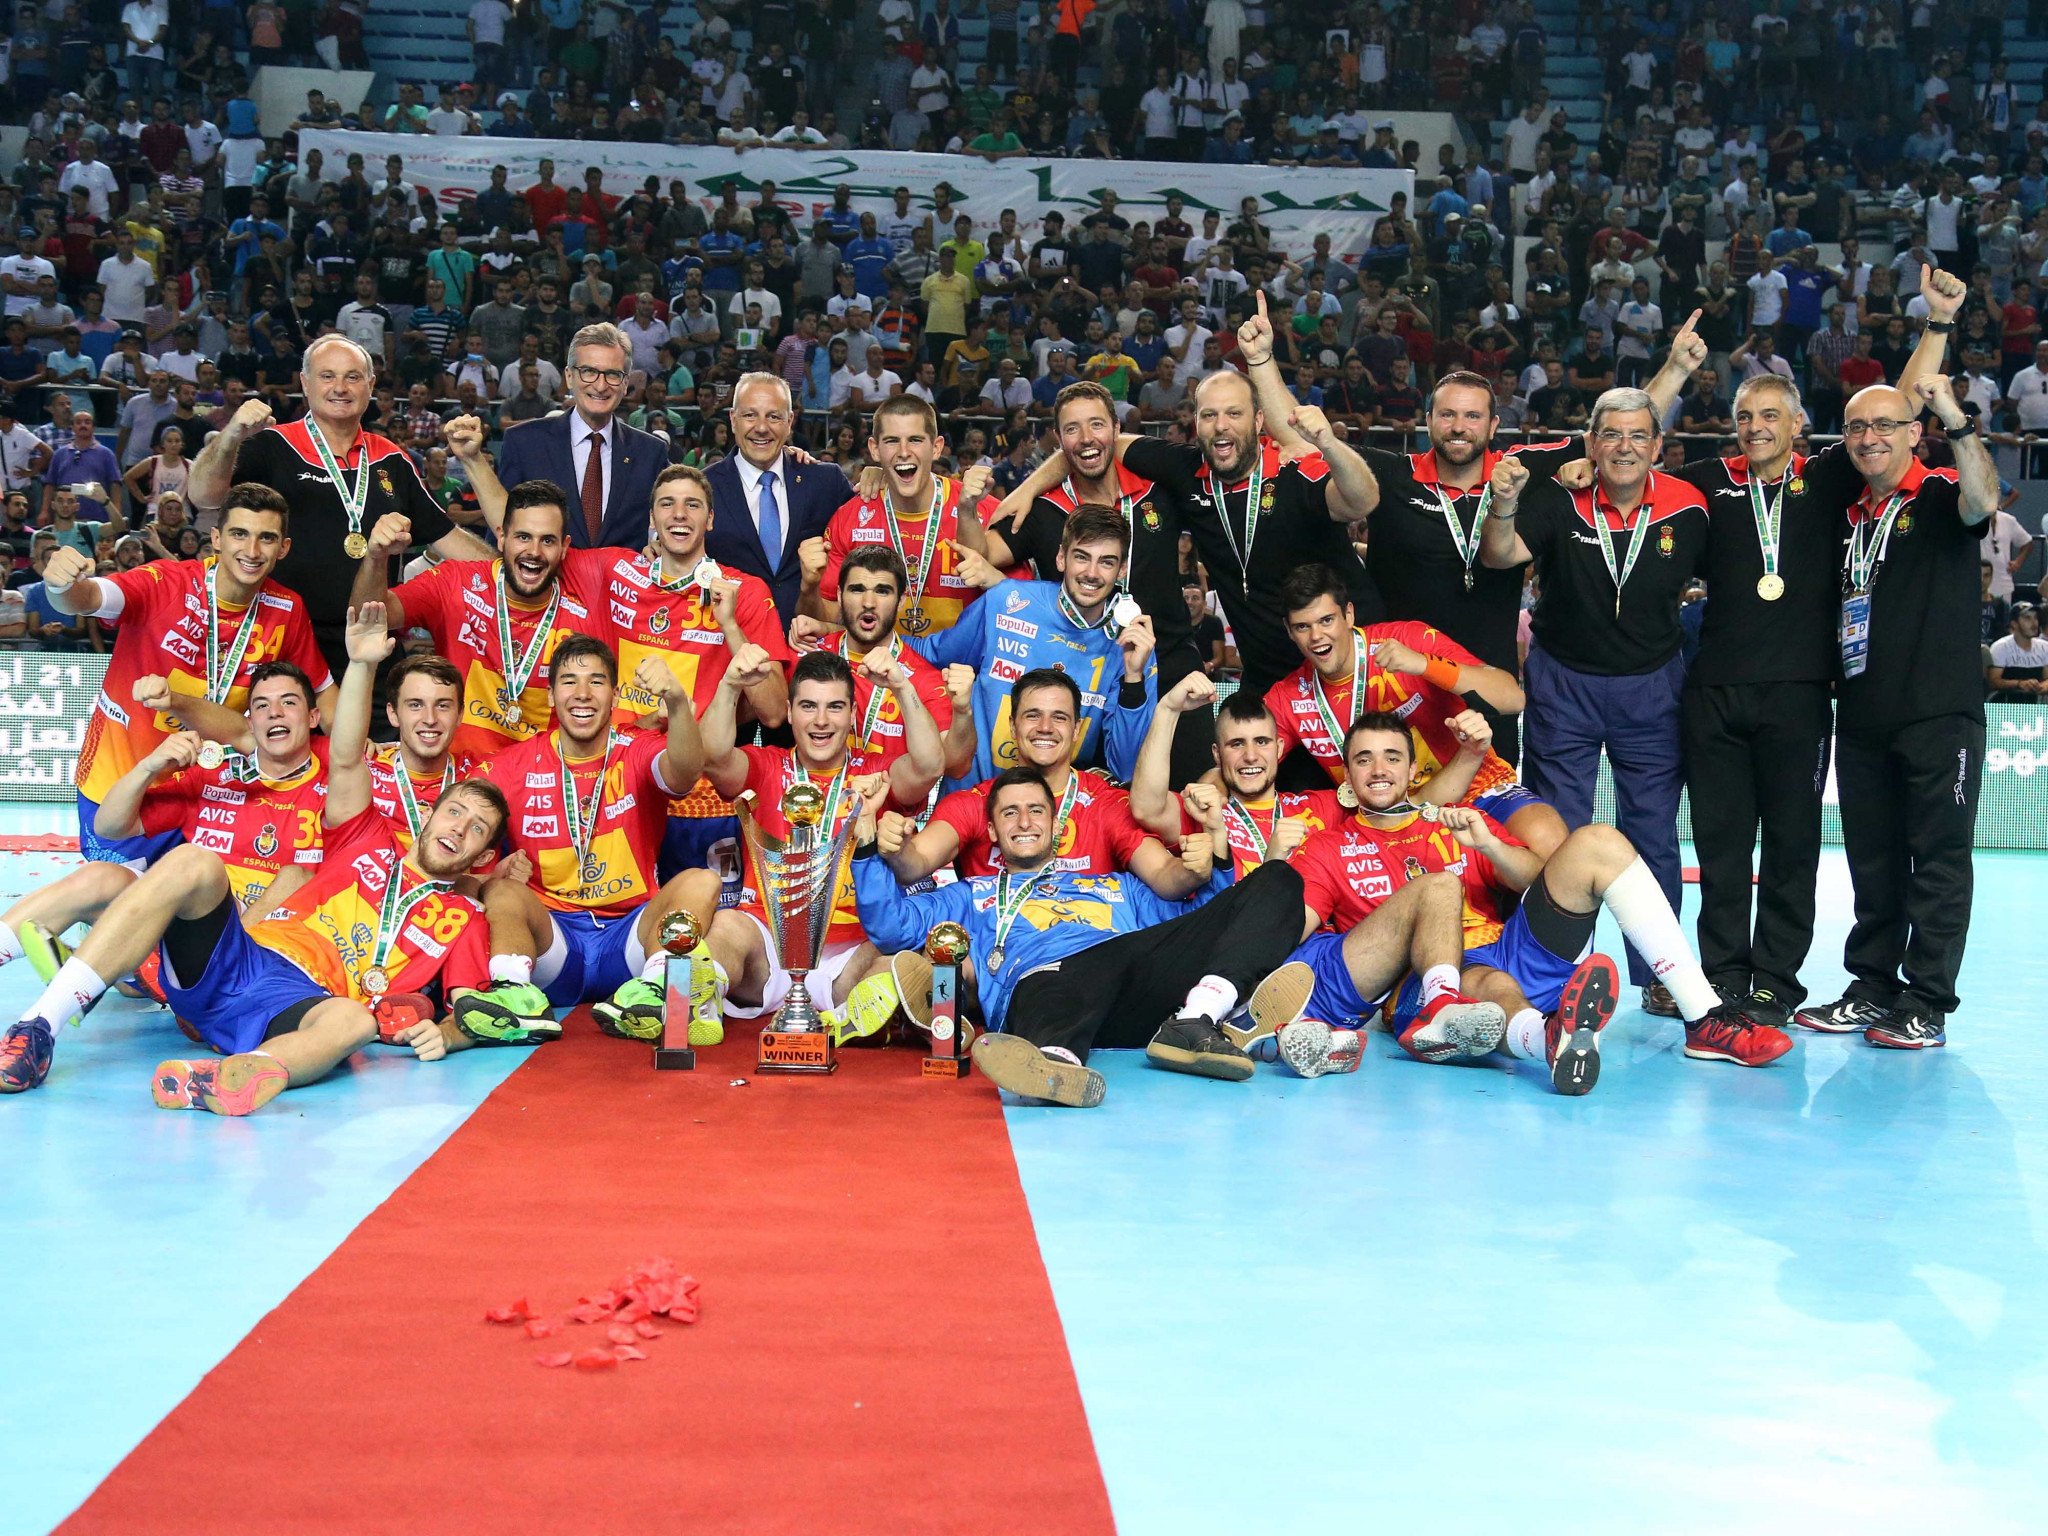 Spain are bidding to defend their Men's Junior World Handball Championship title on home soil ©Spain 2019